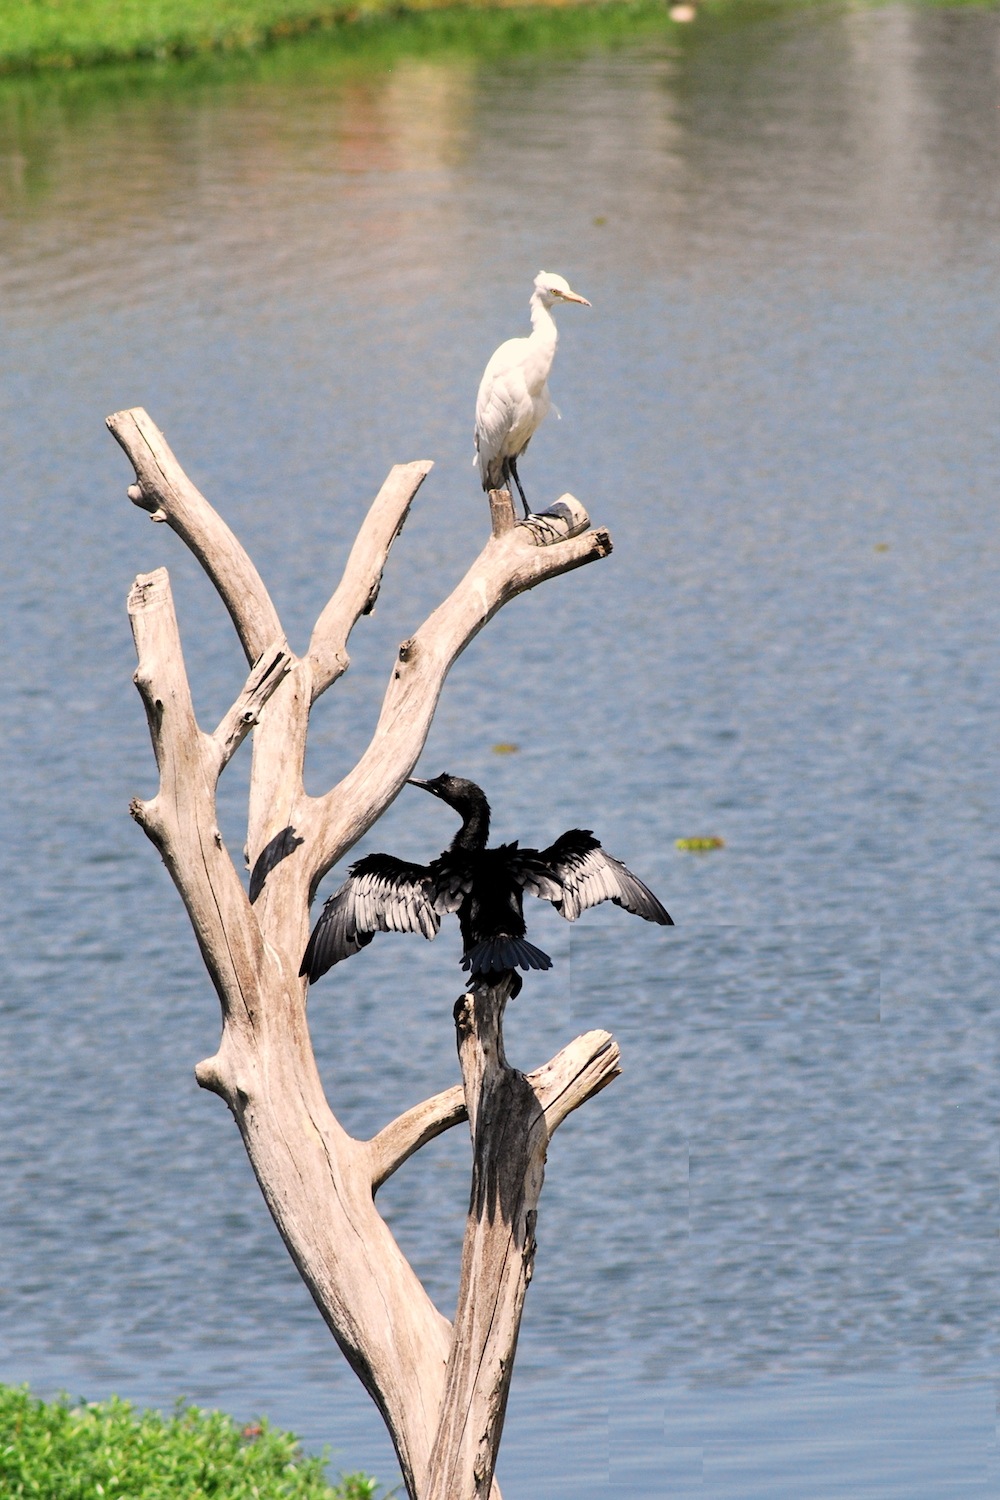 An egret and cormorant on a perch in the lake Image: Shivu Clicks